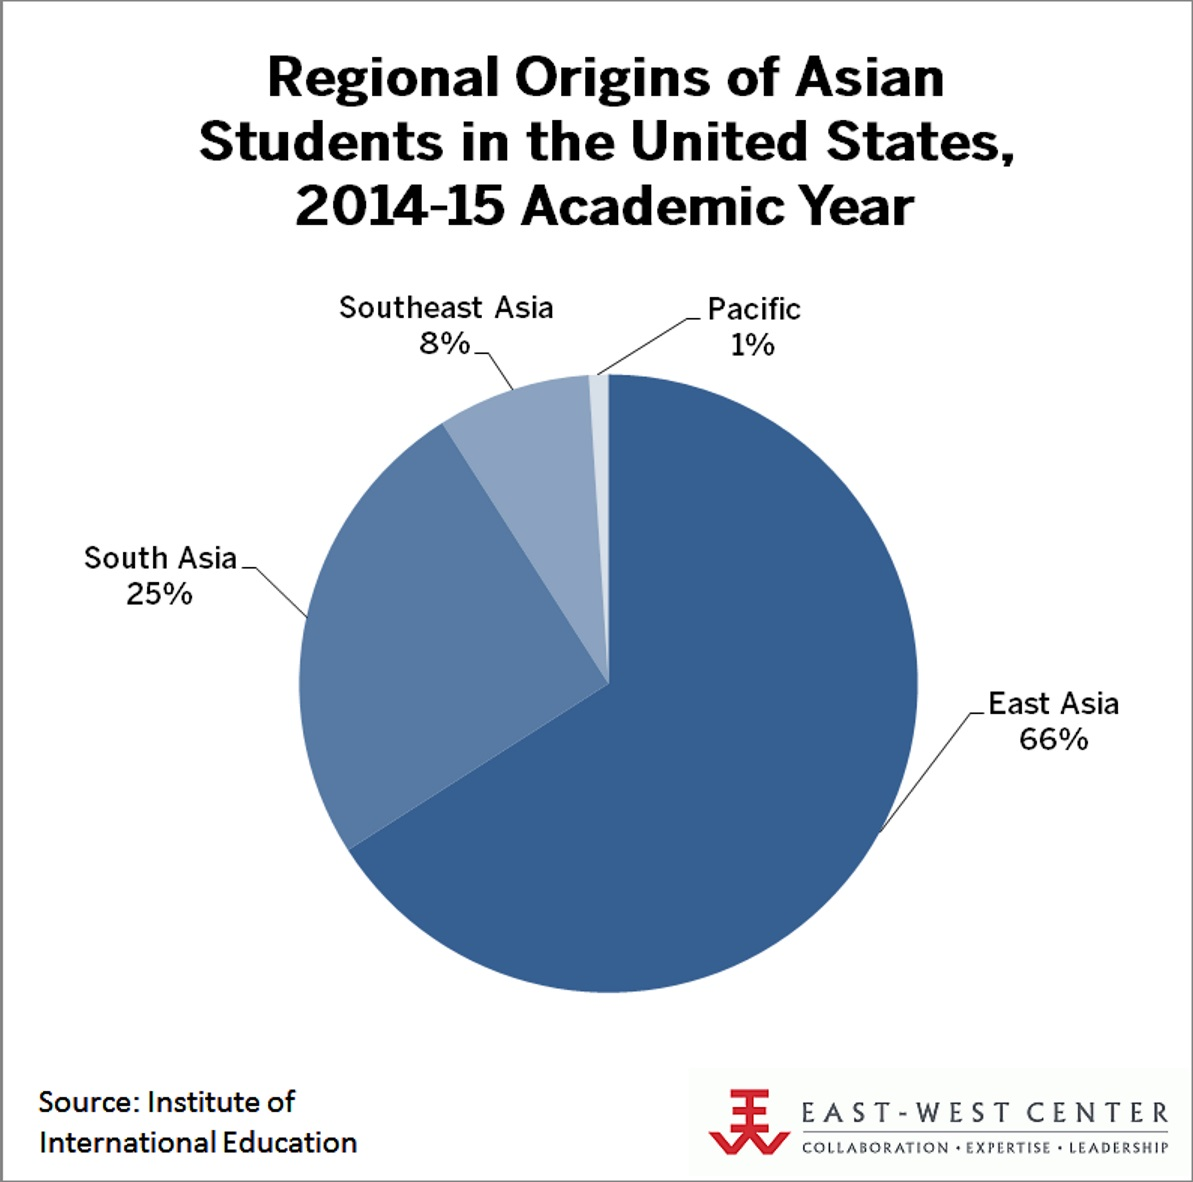 Regional Origins of Asian Students in the United States